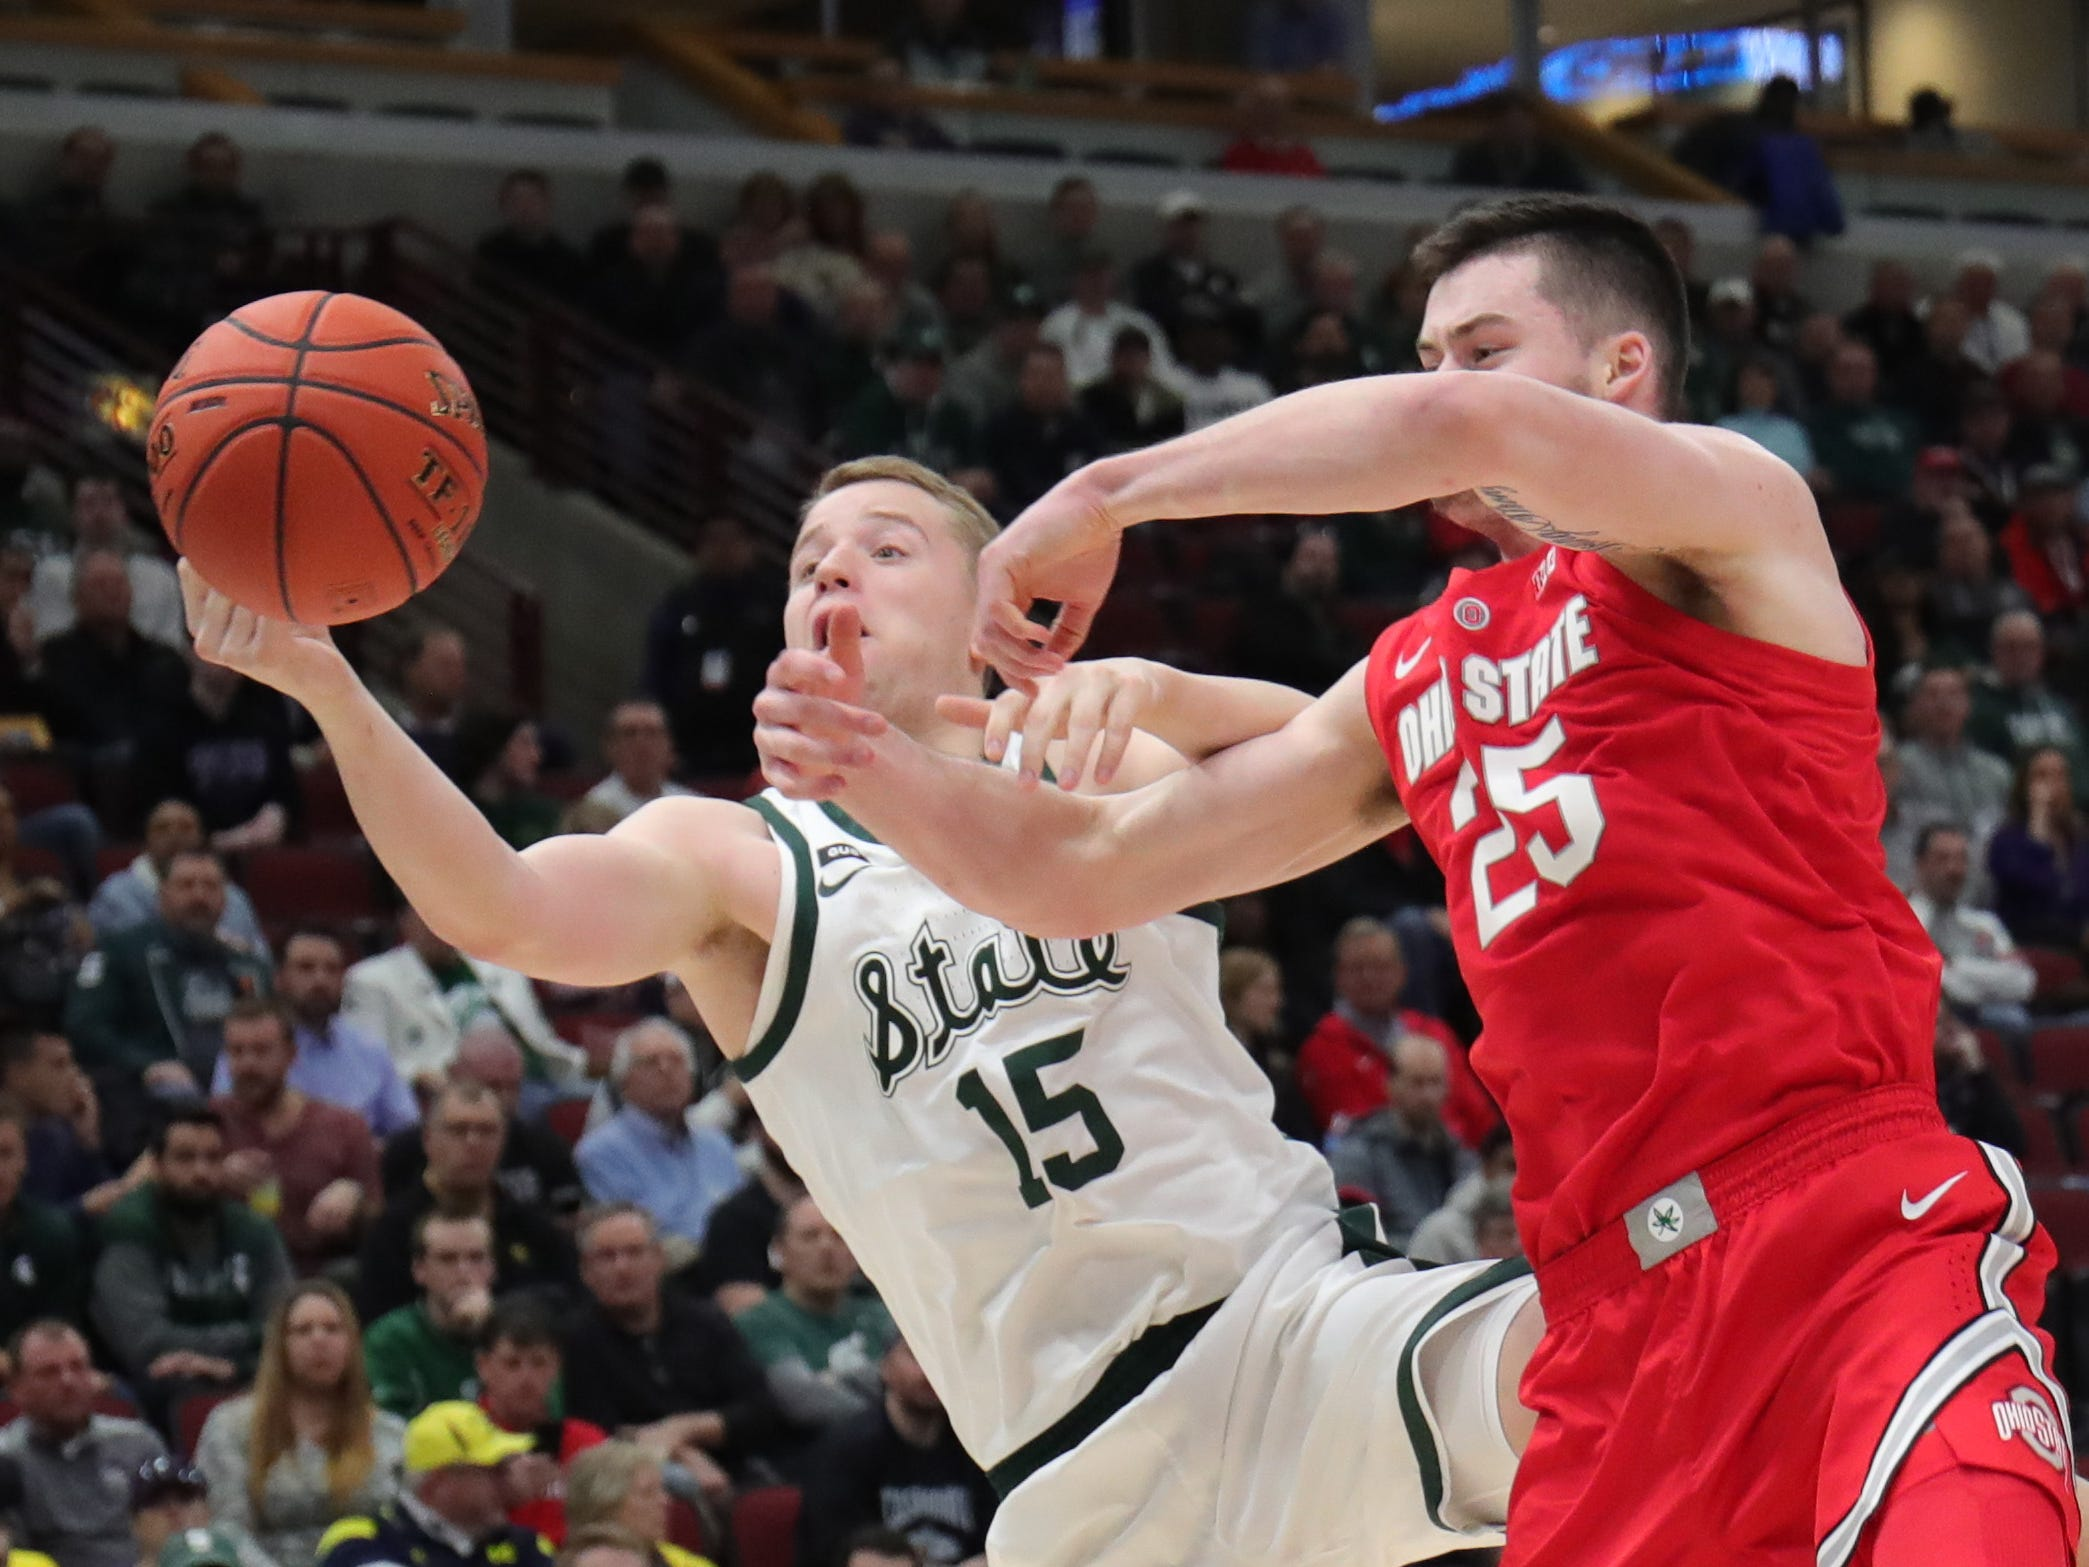 Michigan State forward Thomas Kithier rebounds against Ohio State forward Kyle Young during the first half of the Big Ten tournament Friday, March 15, 2019 at the United Center in Chicago.